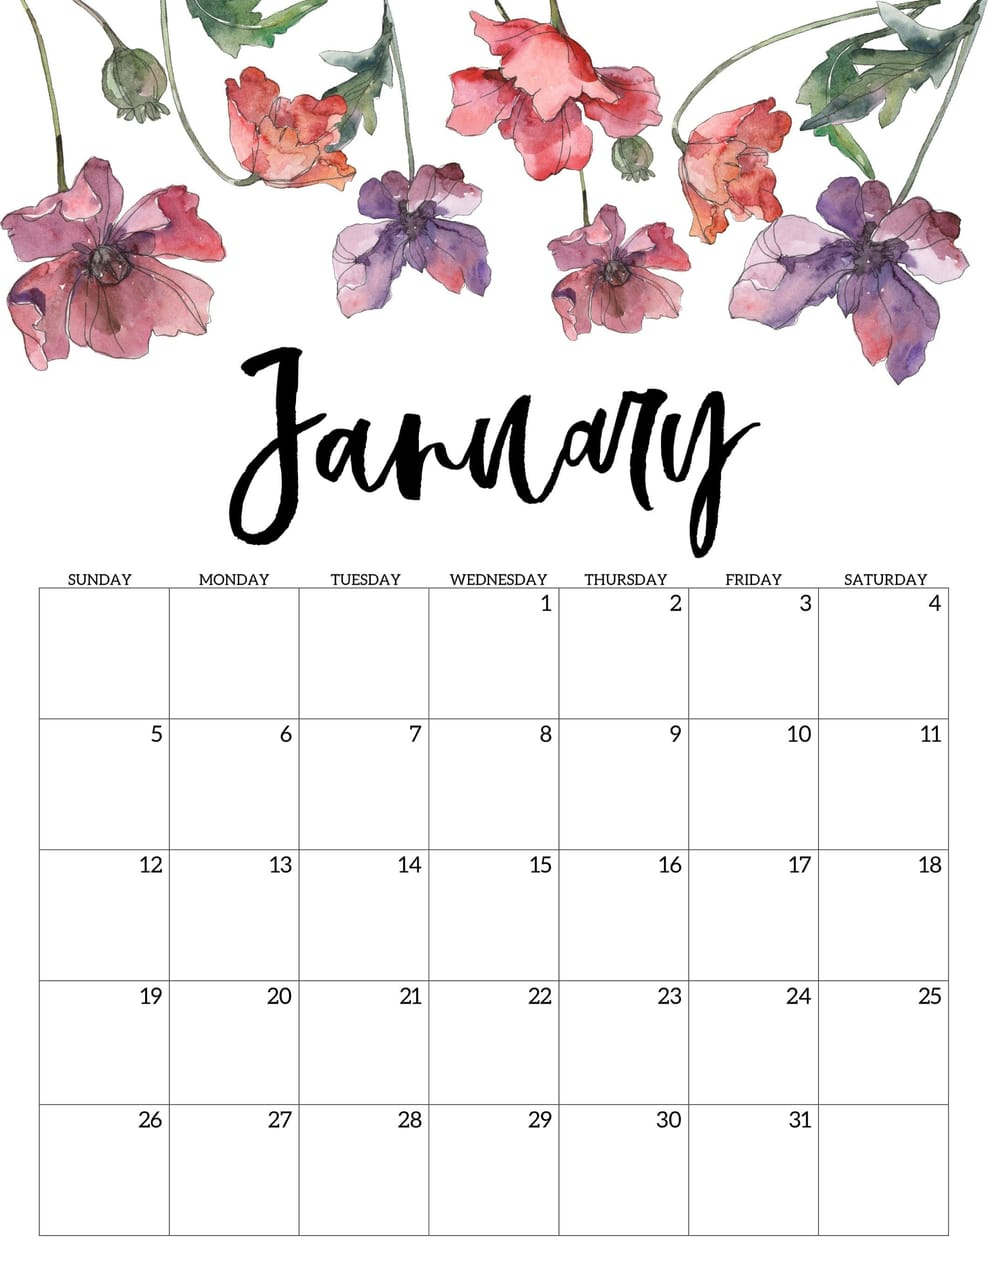 Cute January 2020 Calendar Wallpaper on We Heart It 989x1280